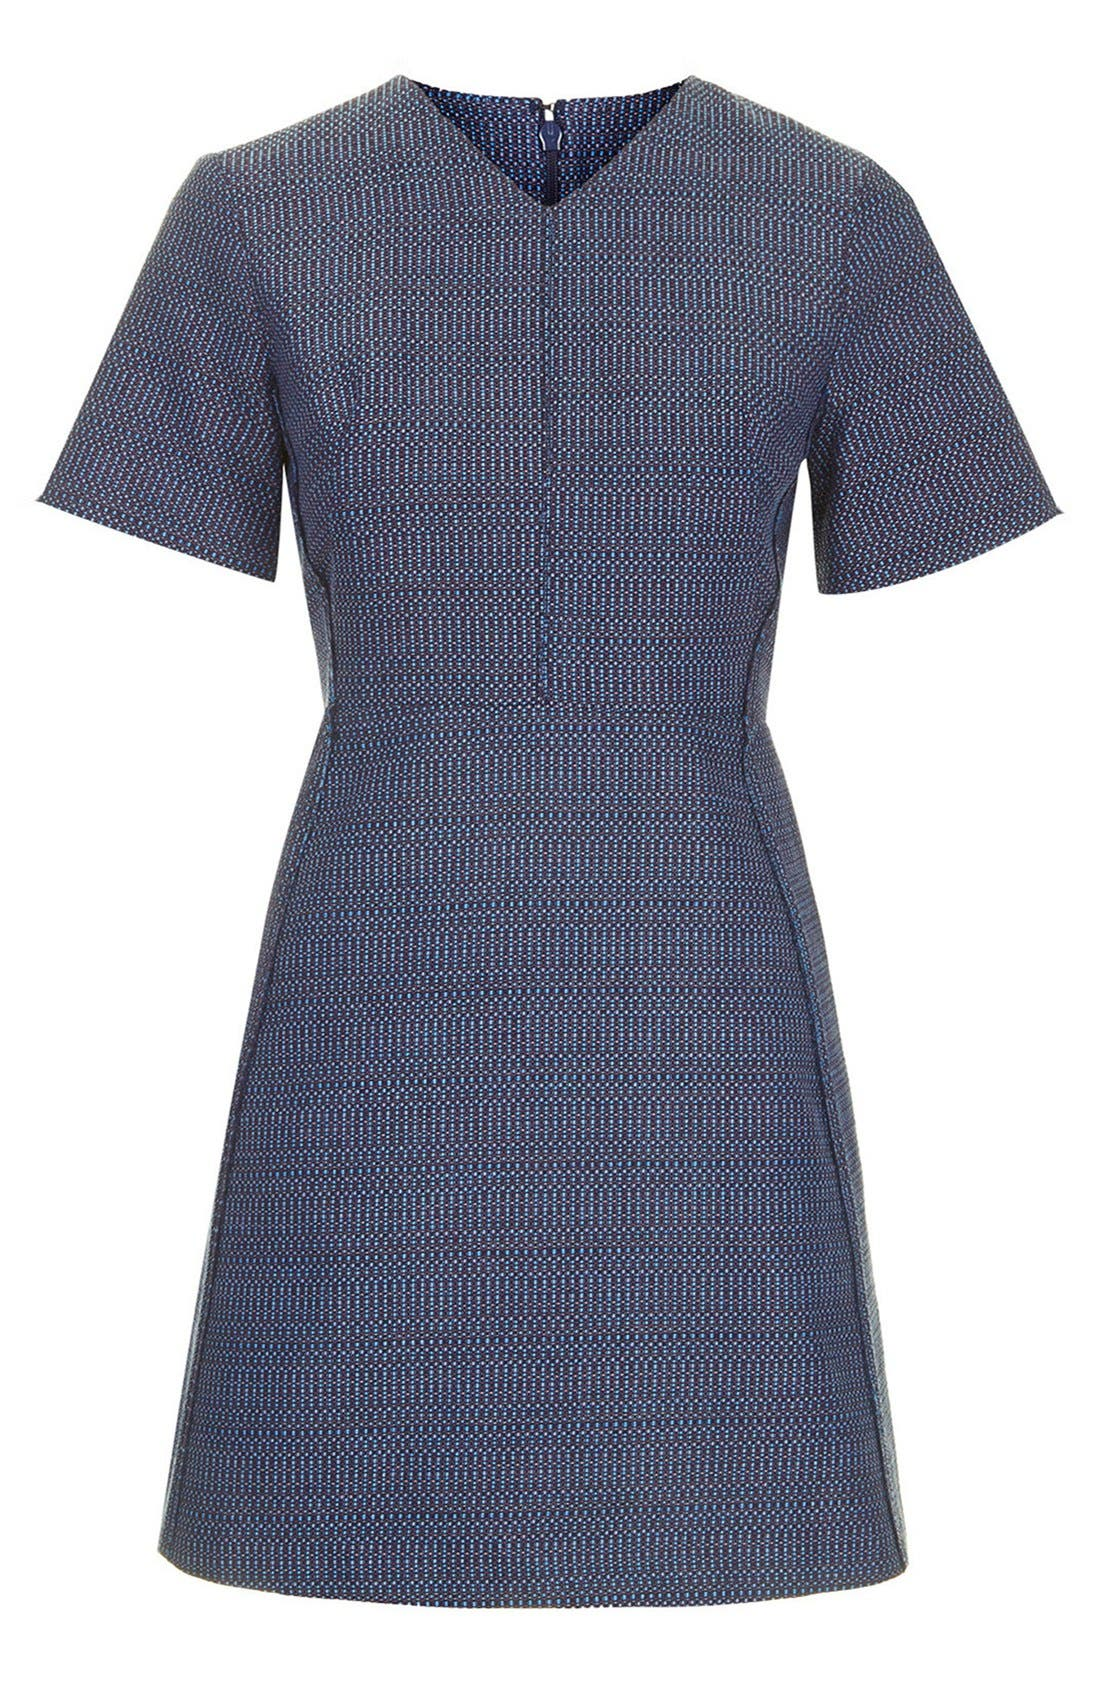 Alternate Image 3  - Topshop Raw Seam Bouclé Shift Dress